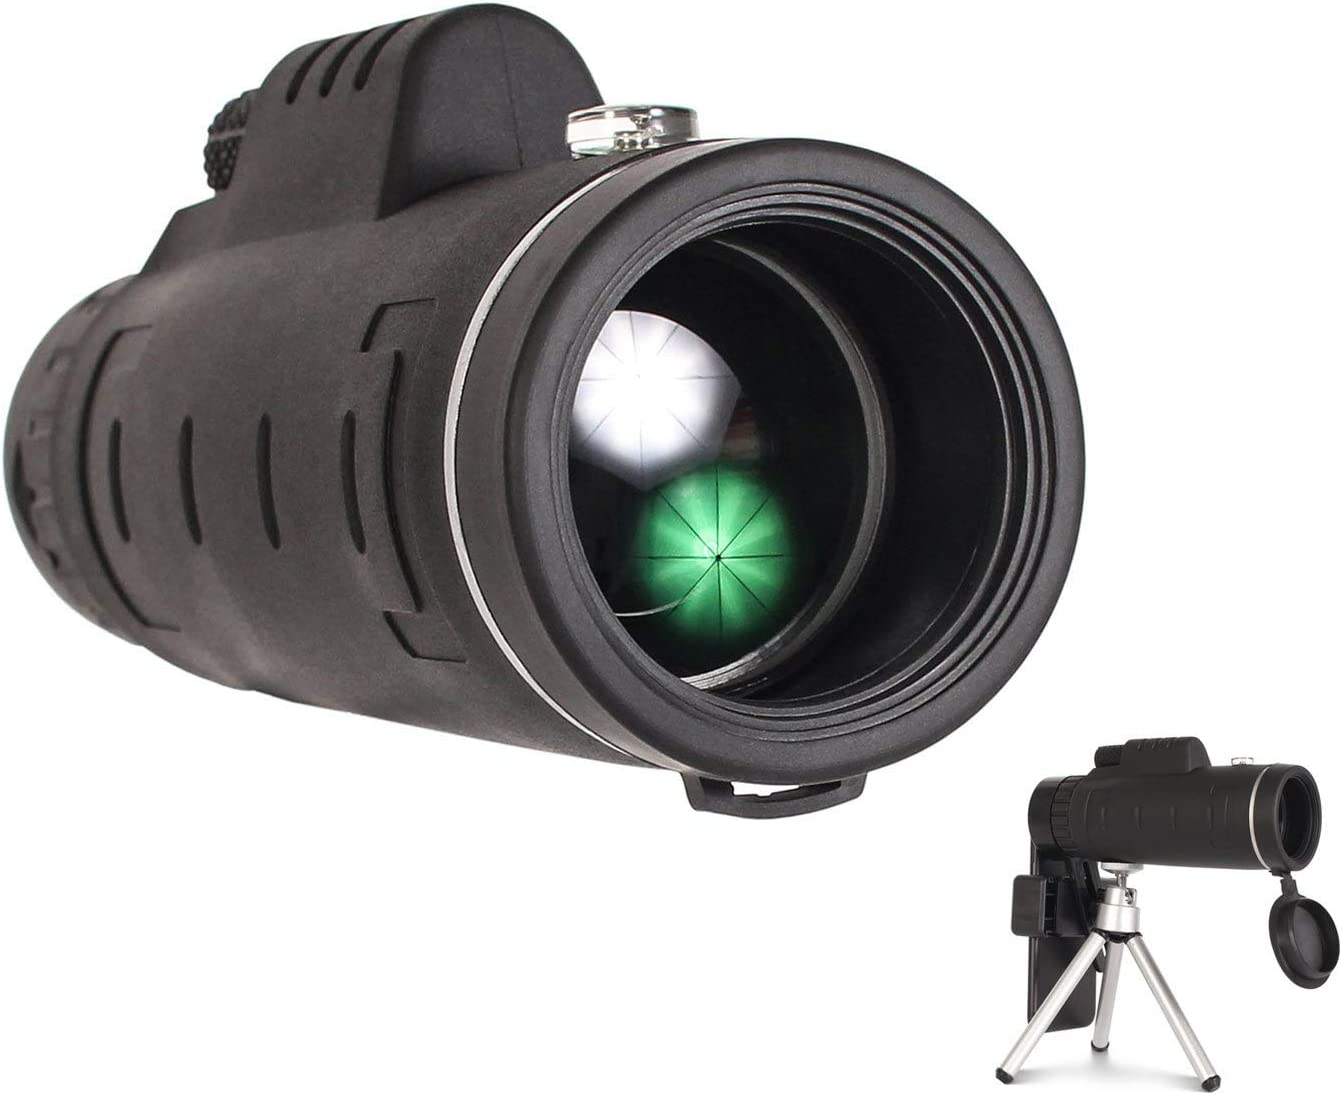 DWP Monocular Telescope half - with 12x50 Lens Al sold out. Smartphone Free 3in1